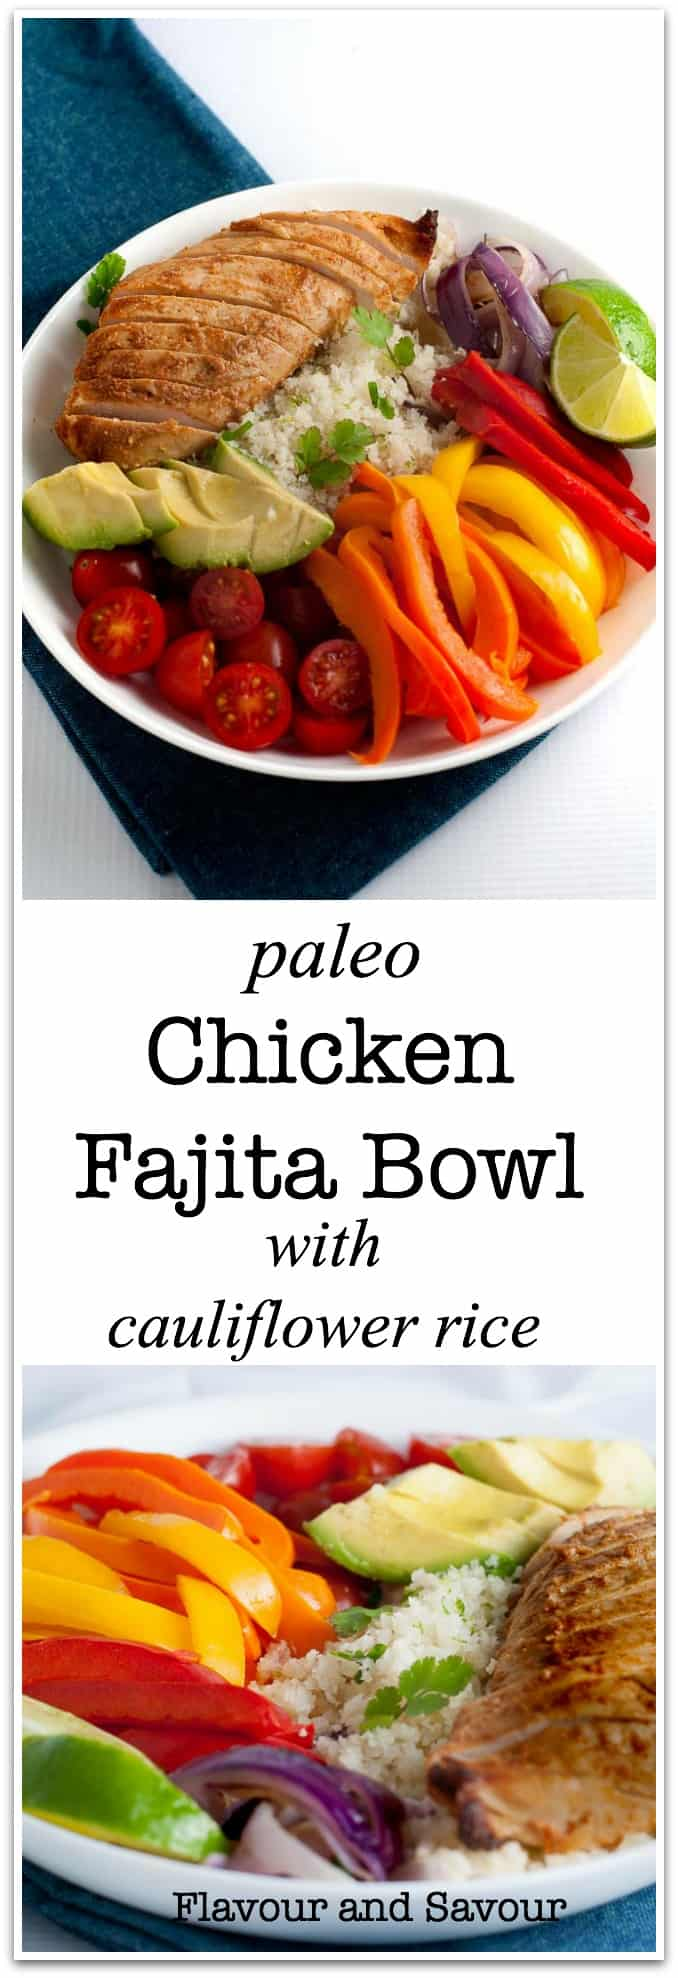 Paleo Chicken Fajita Buddha Bowl with Cauliflower Rice. Your favourite Southern flavours in a bowl with low-carb cauliflower rice, succulent chicken breasts, peppers, onions, tomatoes and avocado. An easy weeknight meal. #whole30 #paleo #chicken #fajita #bowl #cauliflowerrice #avocado #flavourandsavour